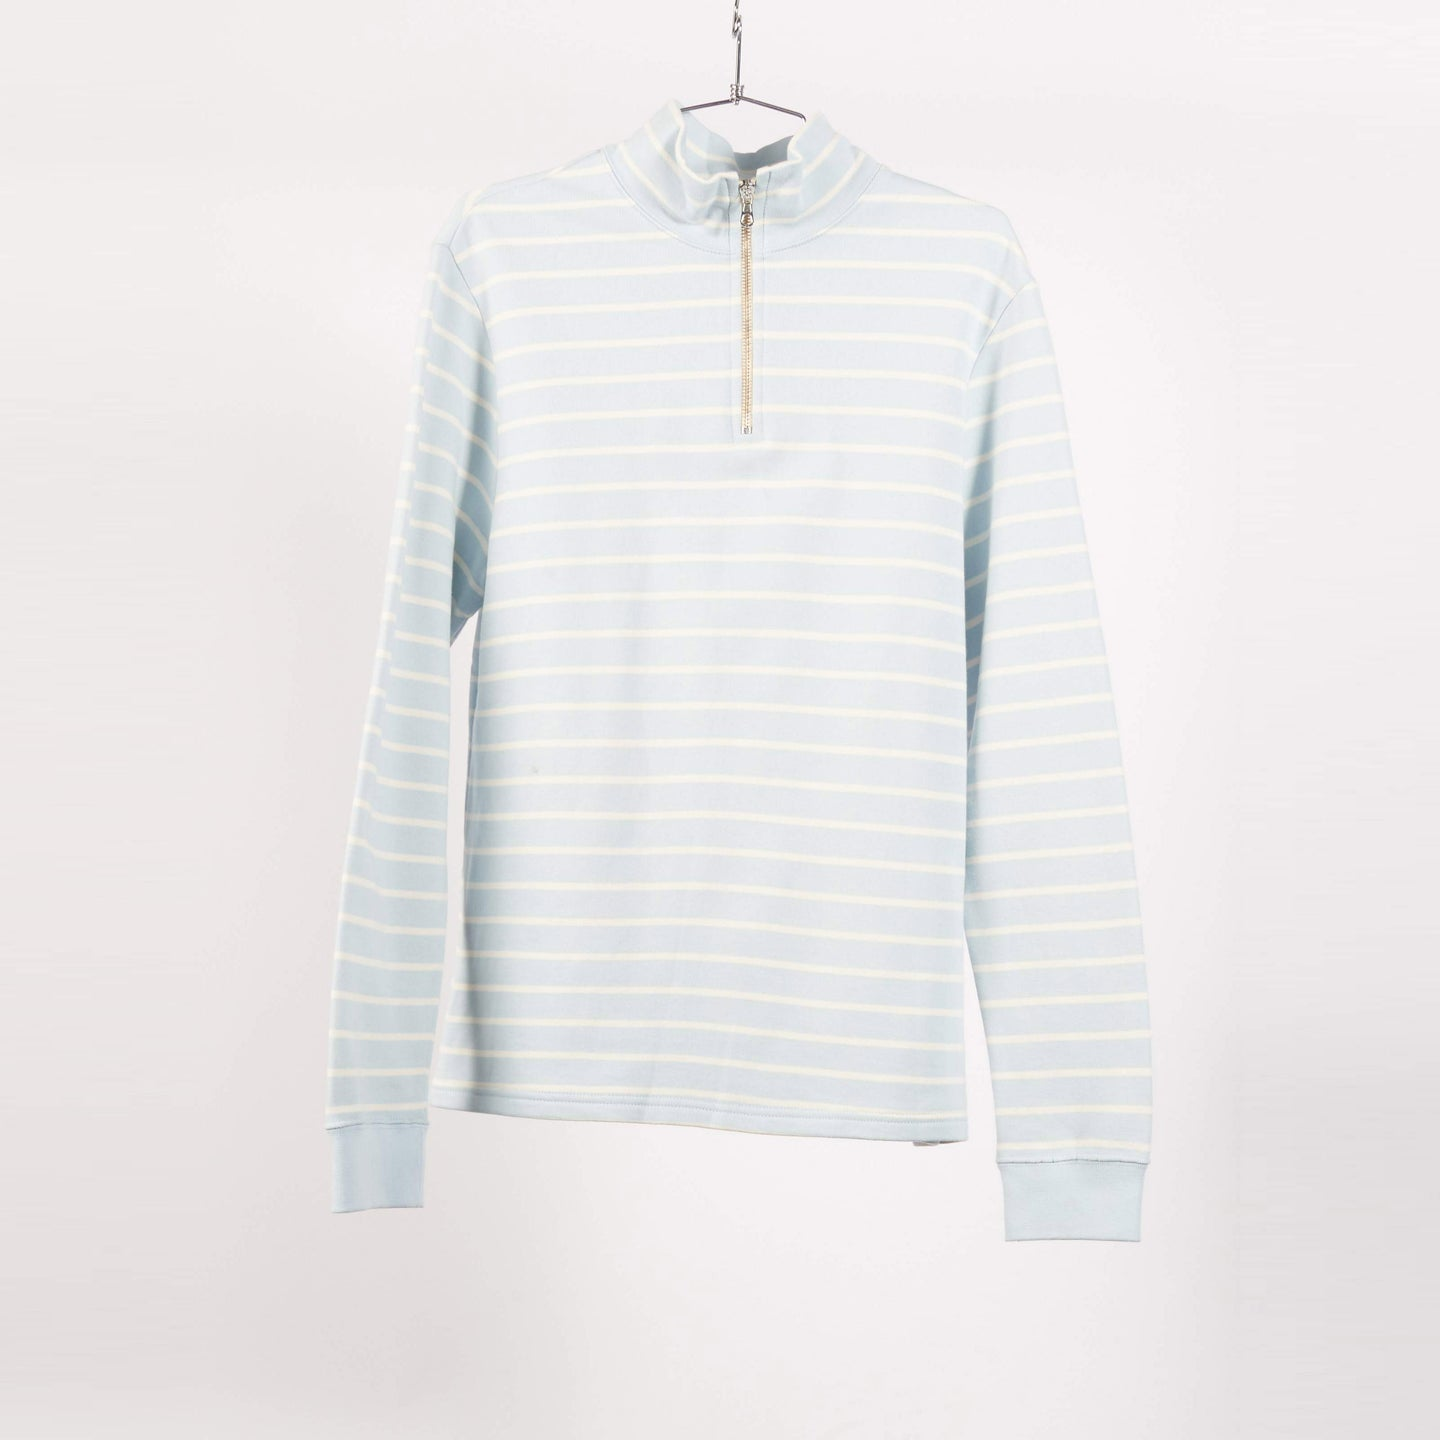 Pale Blue Stripe Half Zip Sweater (Size S)